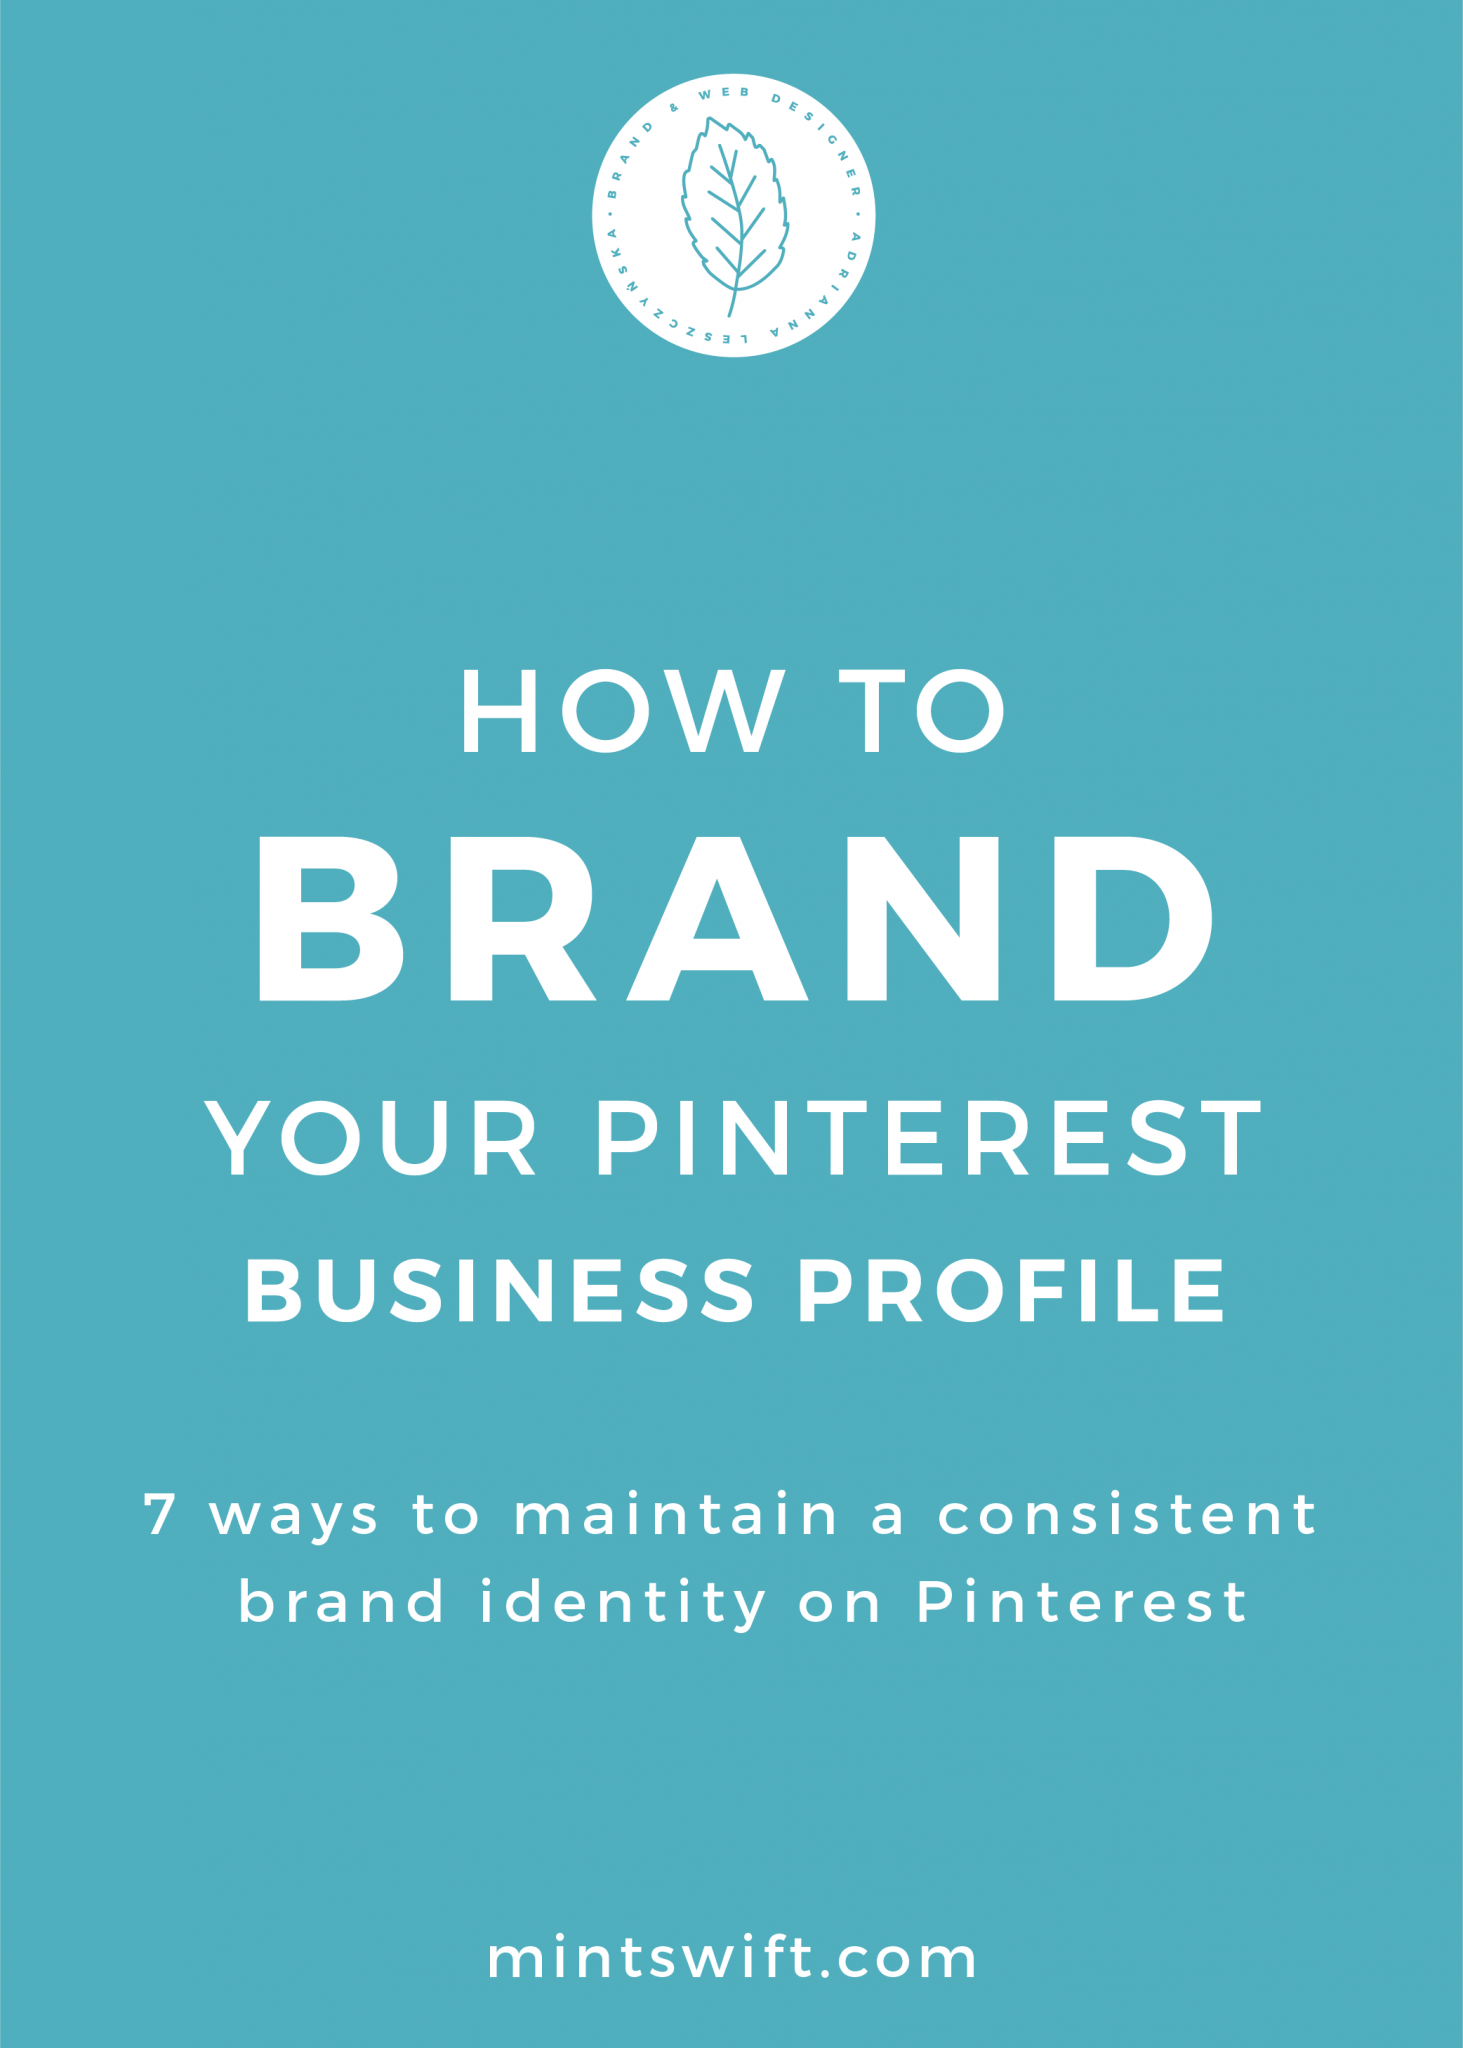 How to Brand Your Pinterest Business Profile. 7 Ways to Maintain a Consistent Brand Identity on Pinterest - MintSwift